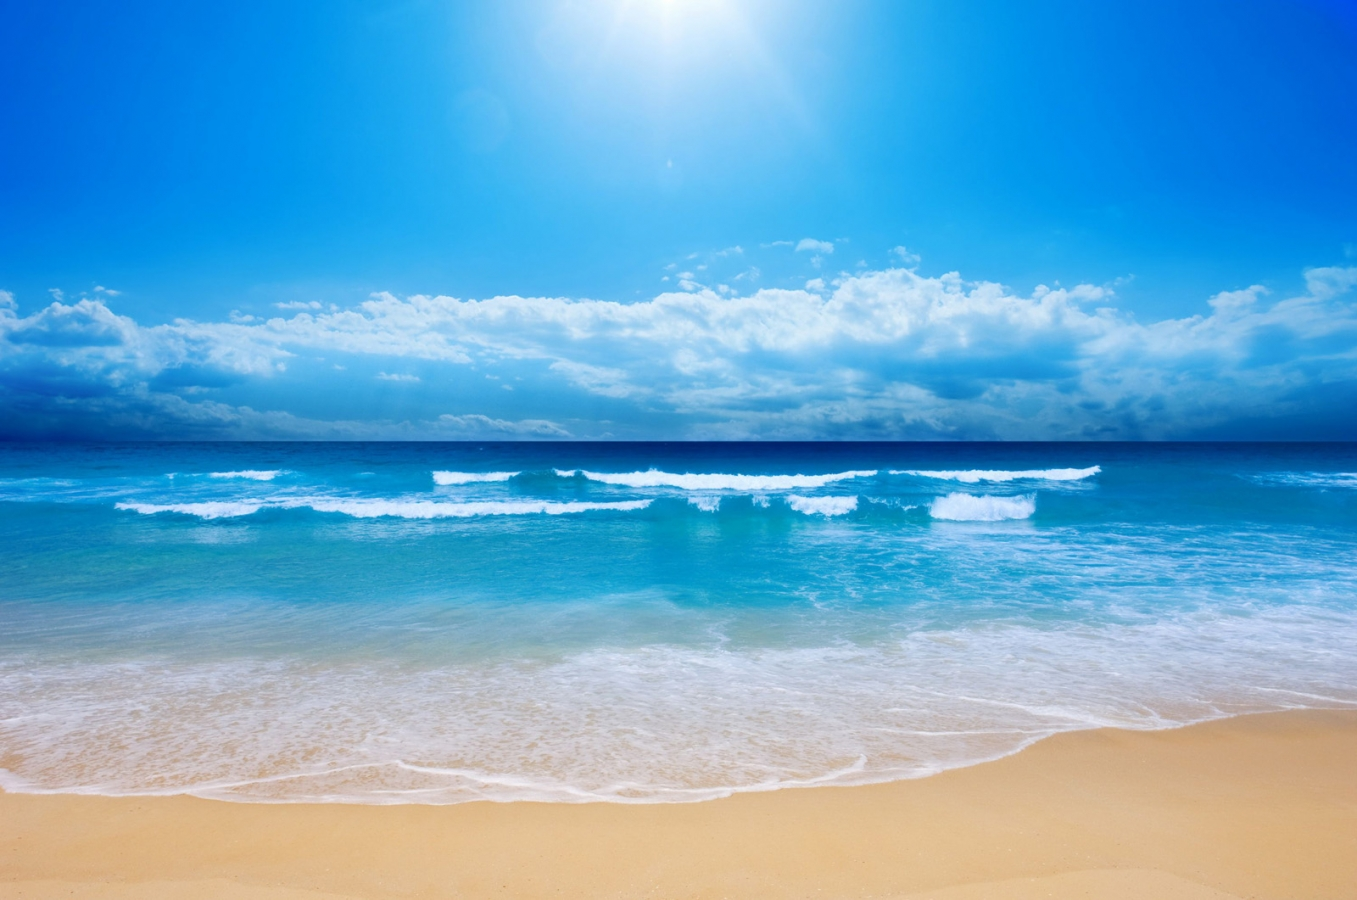 sea ocean wave beach sand wallpaper